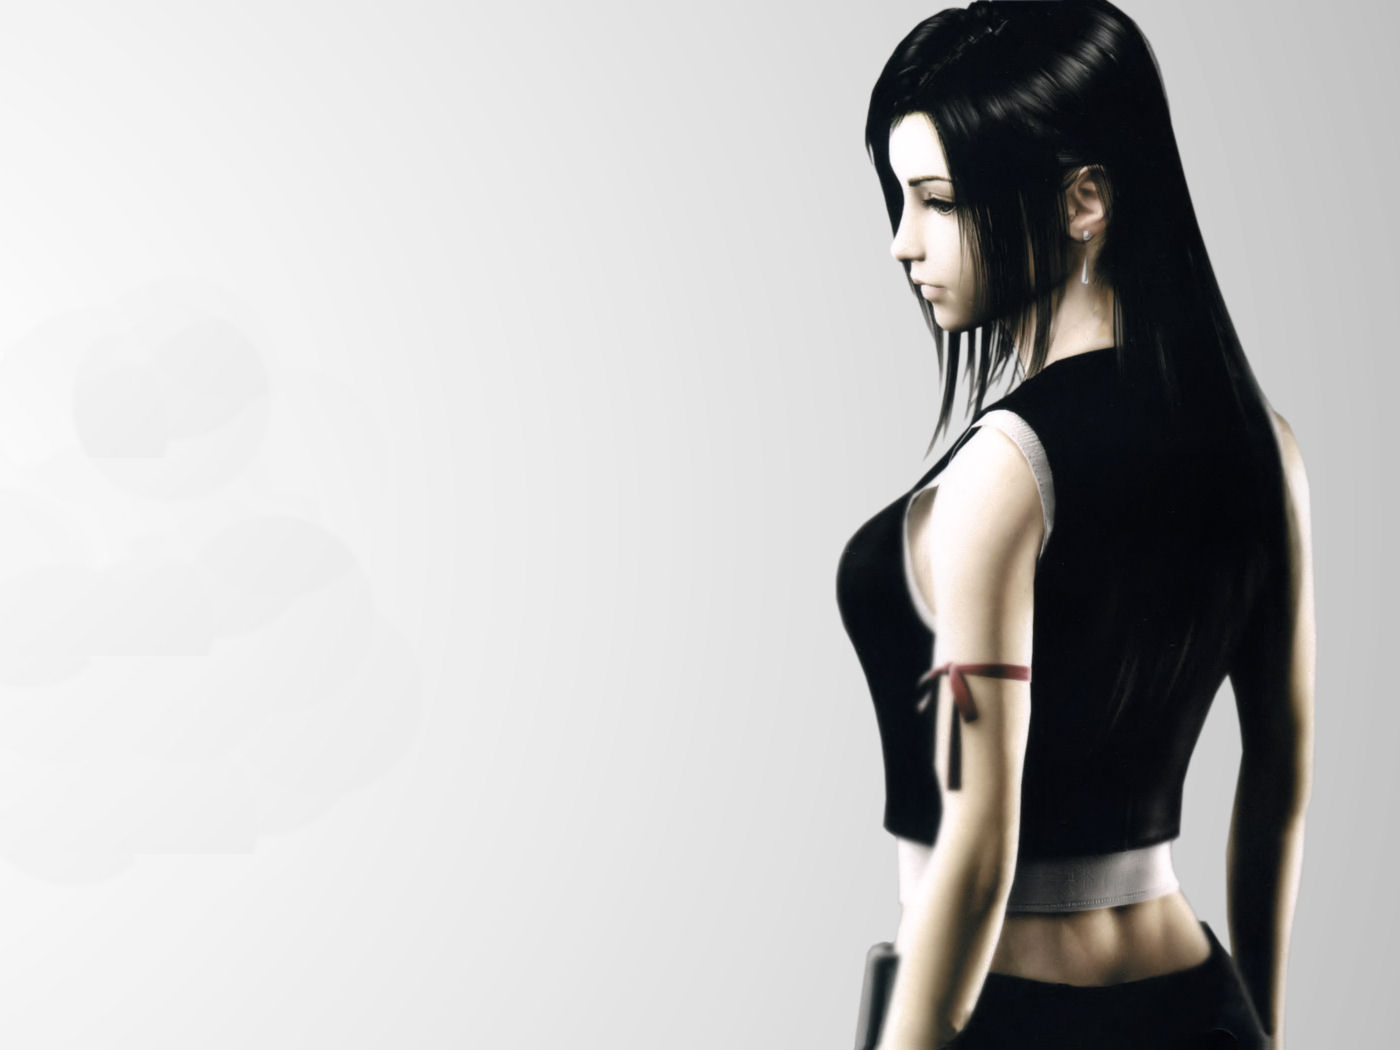 50 Final Fantasy 7 Tifa Wallpaper On Wallpapersafari